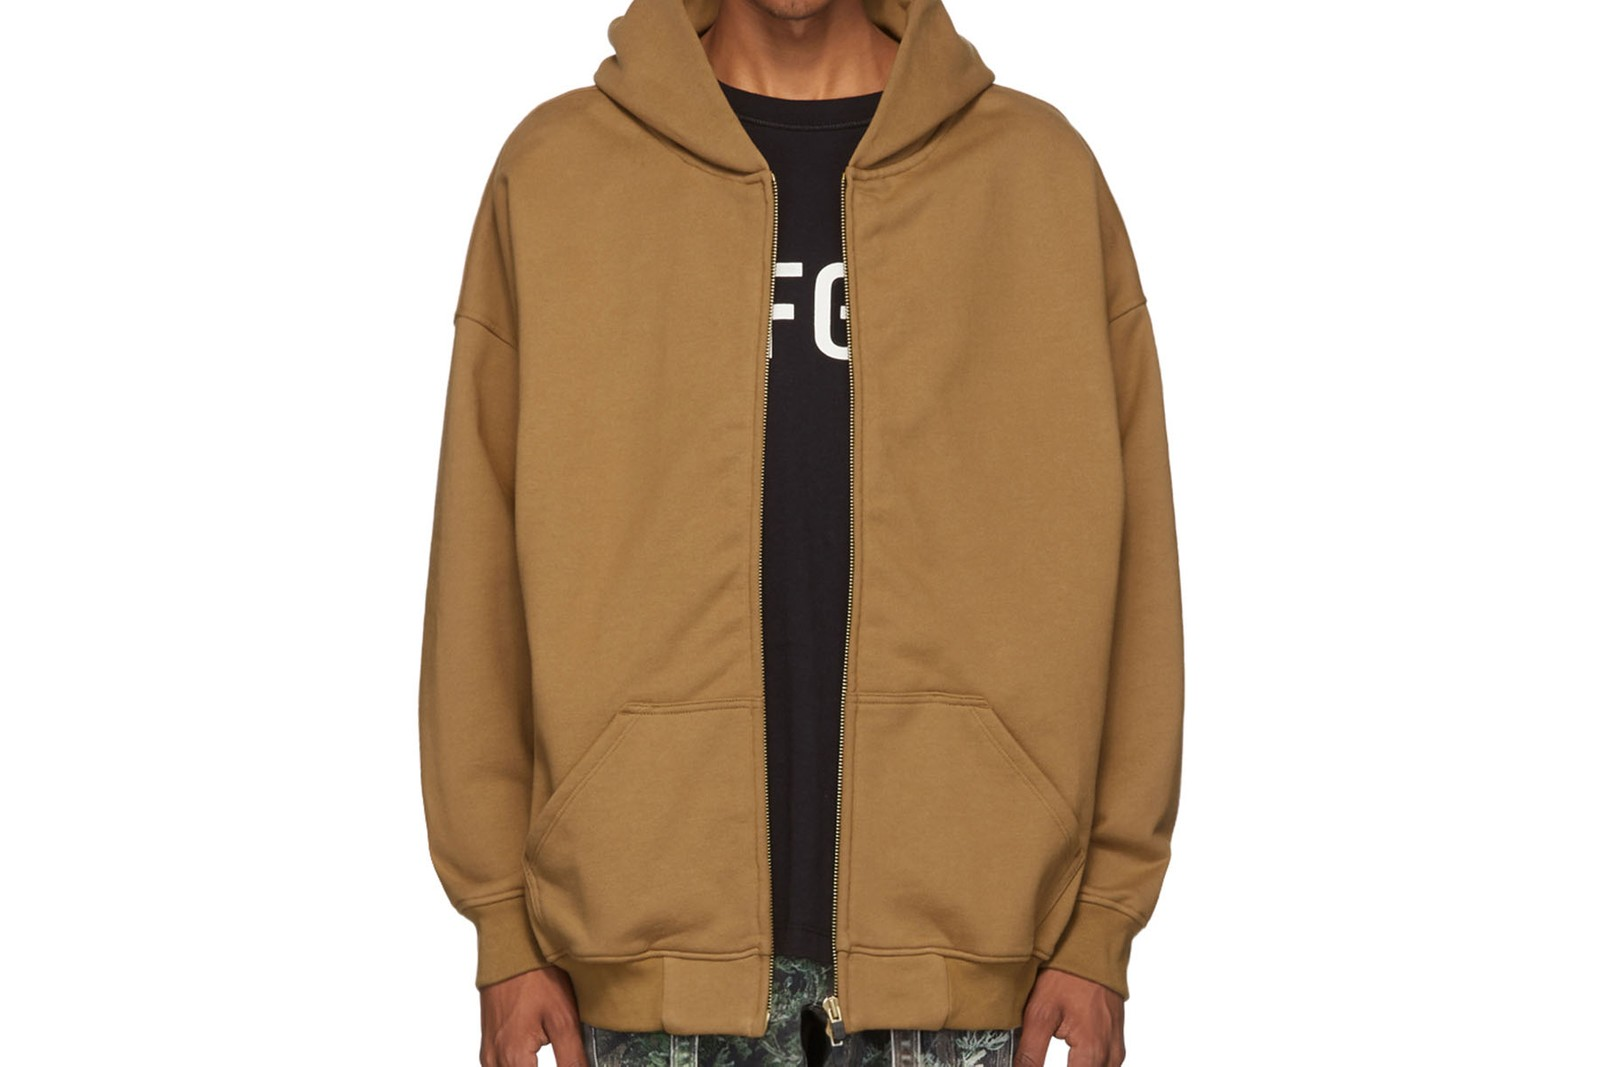 OAMC VETEMENTS Rhude Fear of God sacai undercover off-white